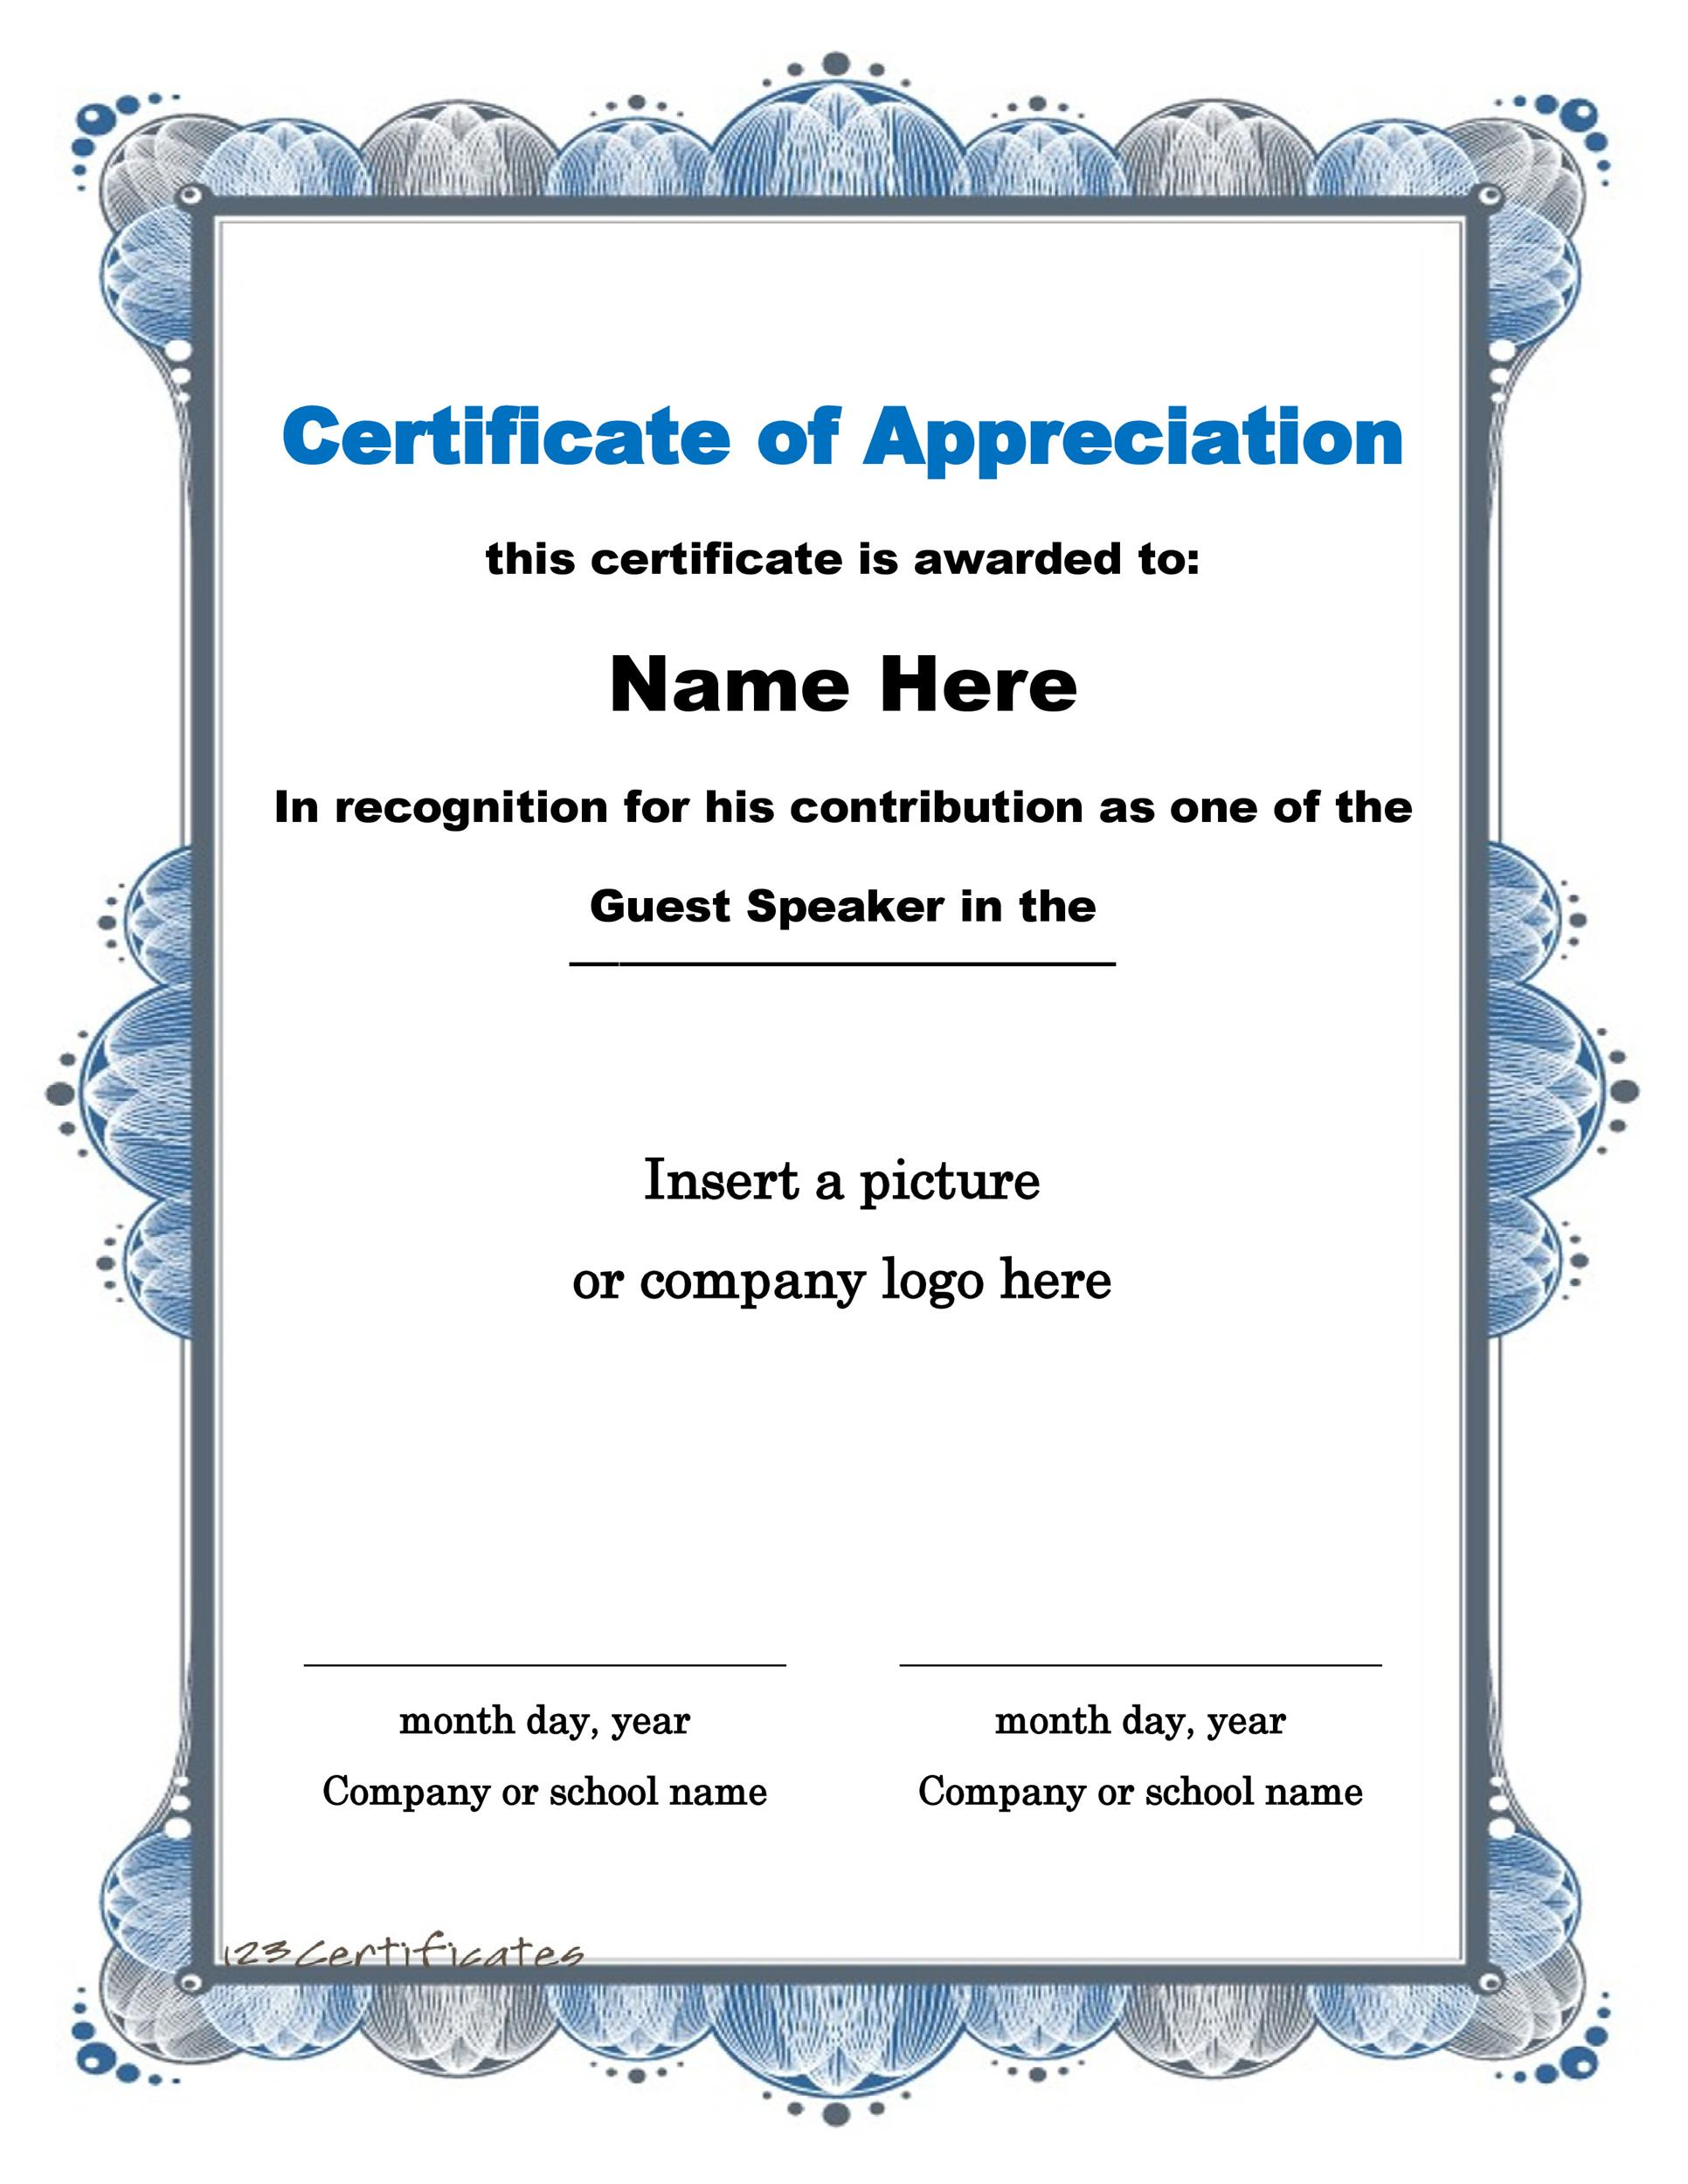 Free certificate of appreciation templates and letters 30 free certificate of appreciation templates and letters yelopaper Images